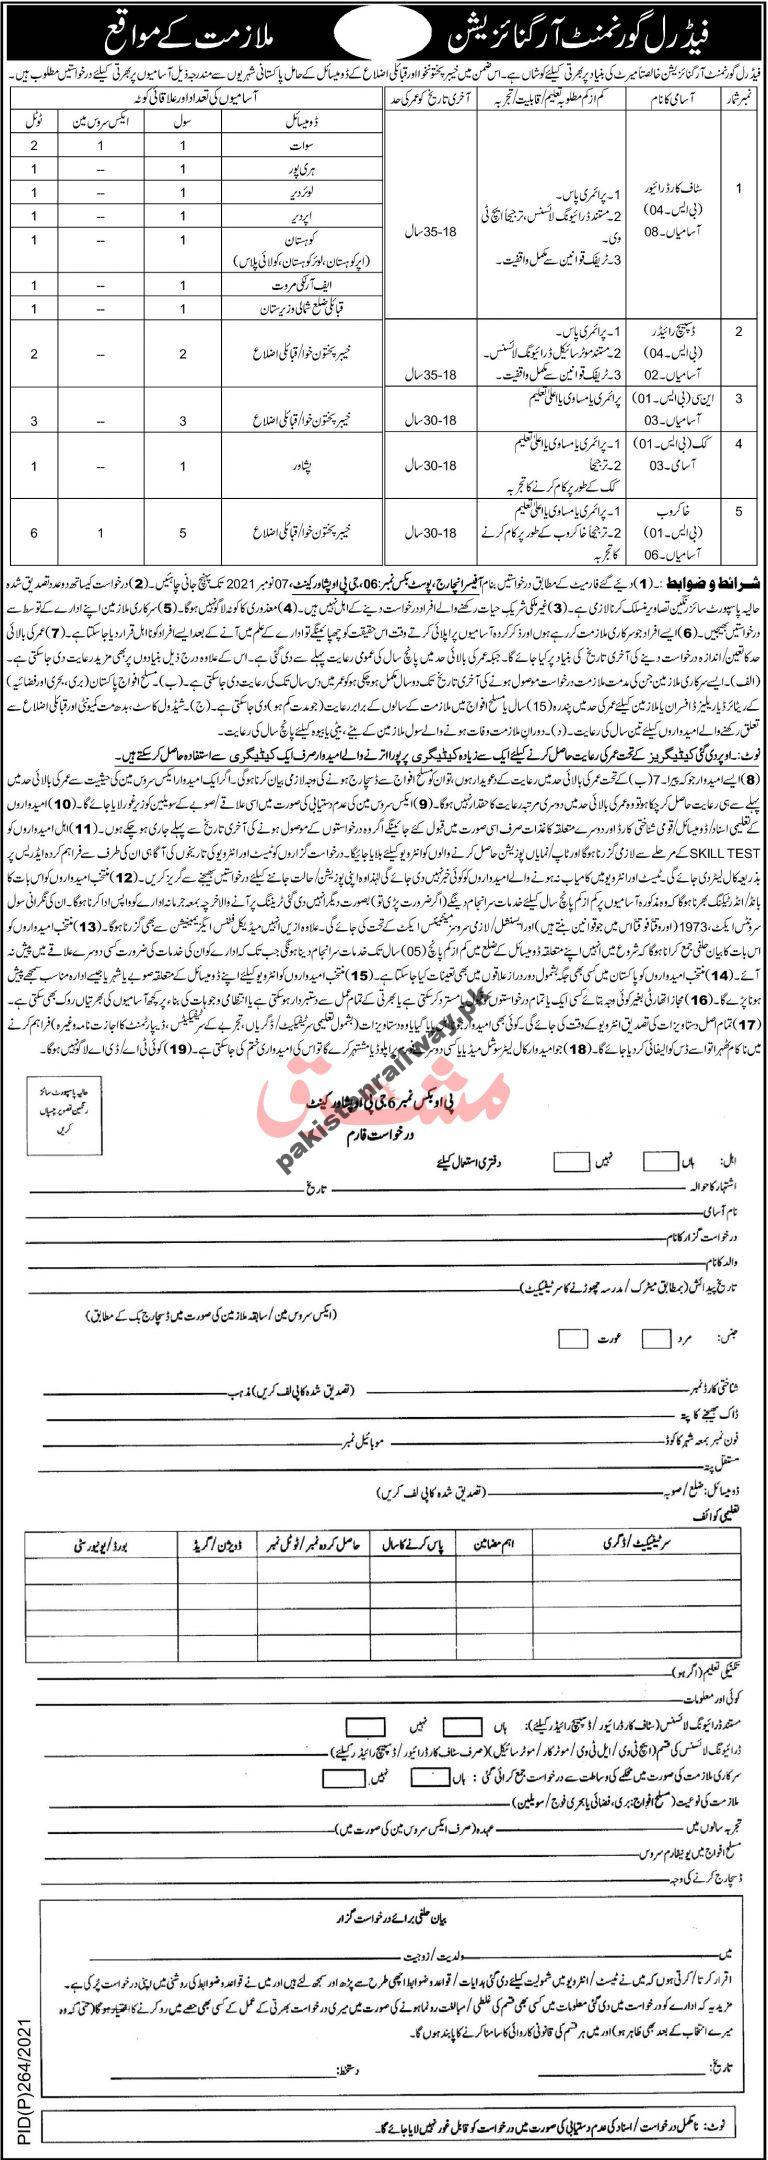 Govt Jobs in KPK 2021 At Federal Government Organization